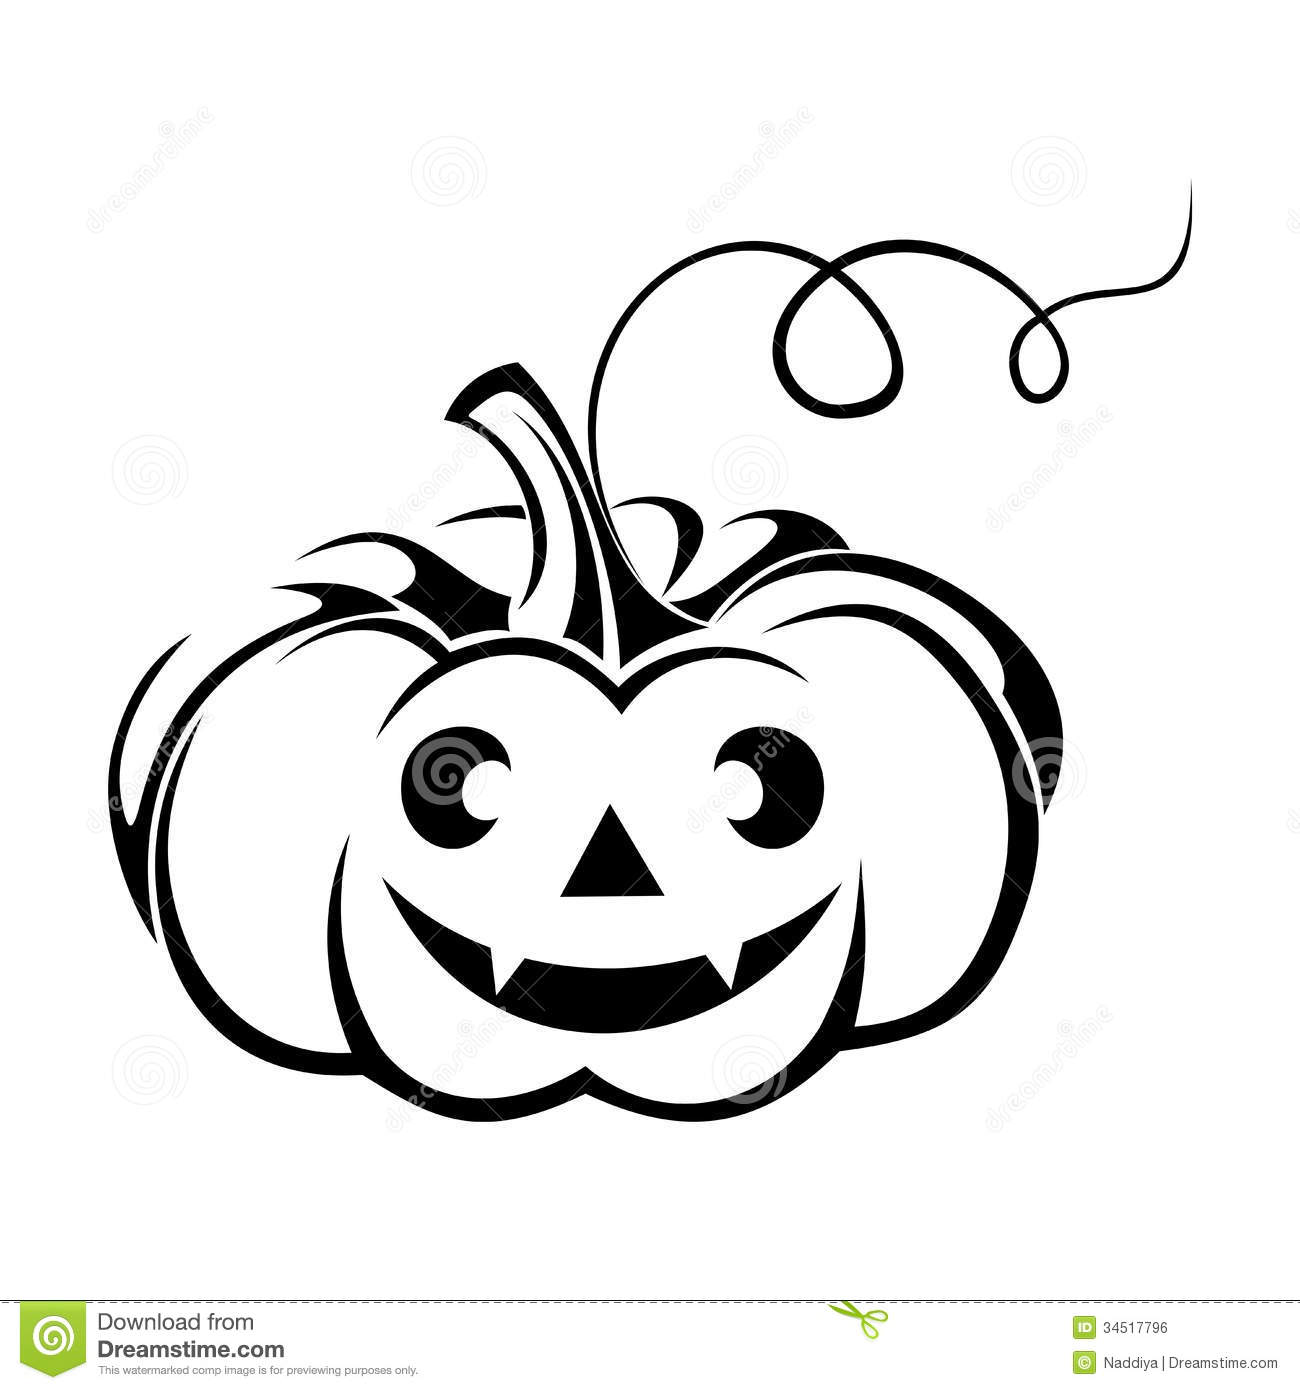 Black Silhouette Of Jack O Lantern Halloween Pump Stock